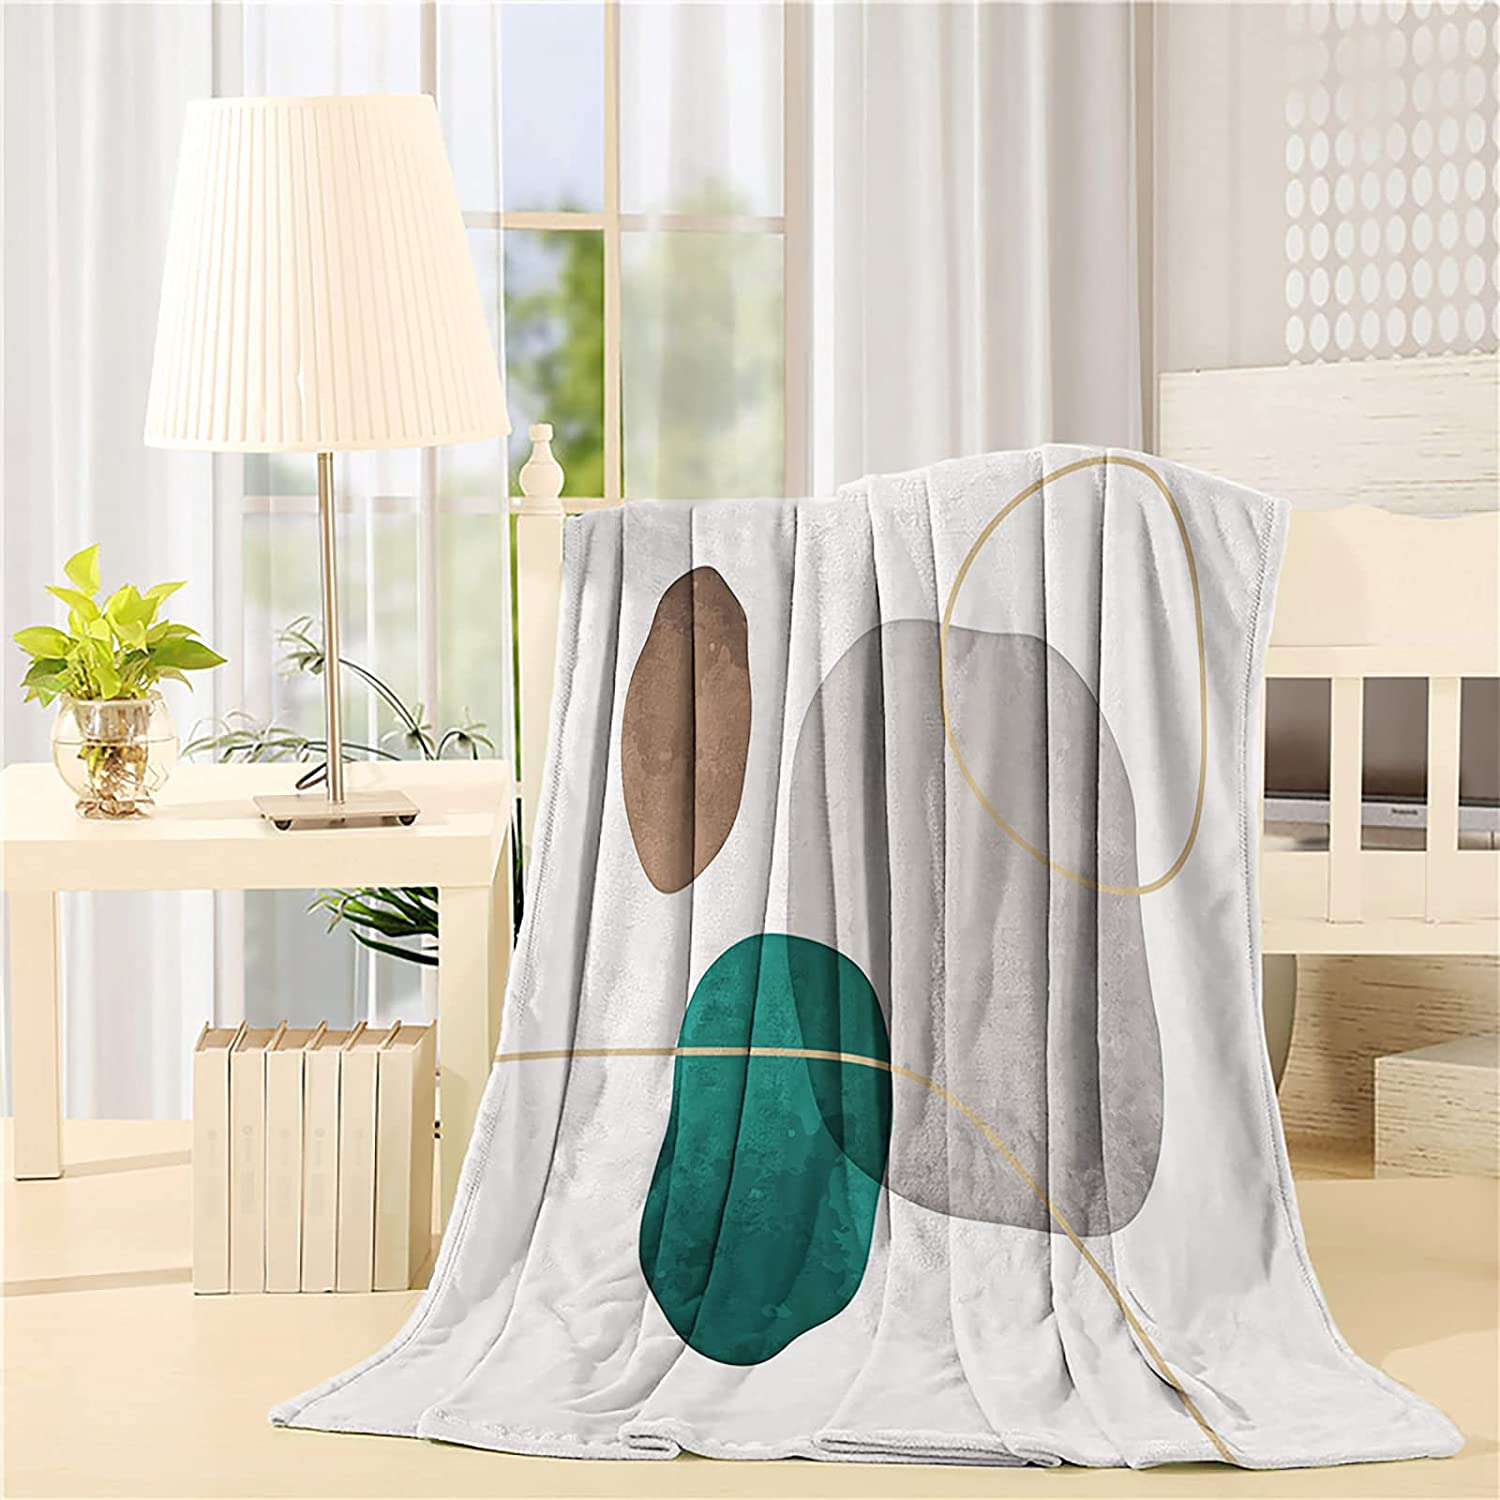 Fleece Blanket Plush New York Mall Throw Abstract Gree Mid Century Art OFFicial mail order